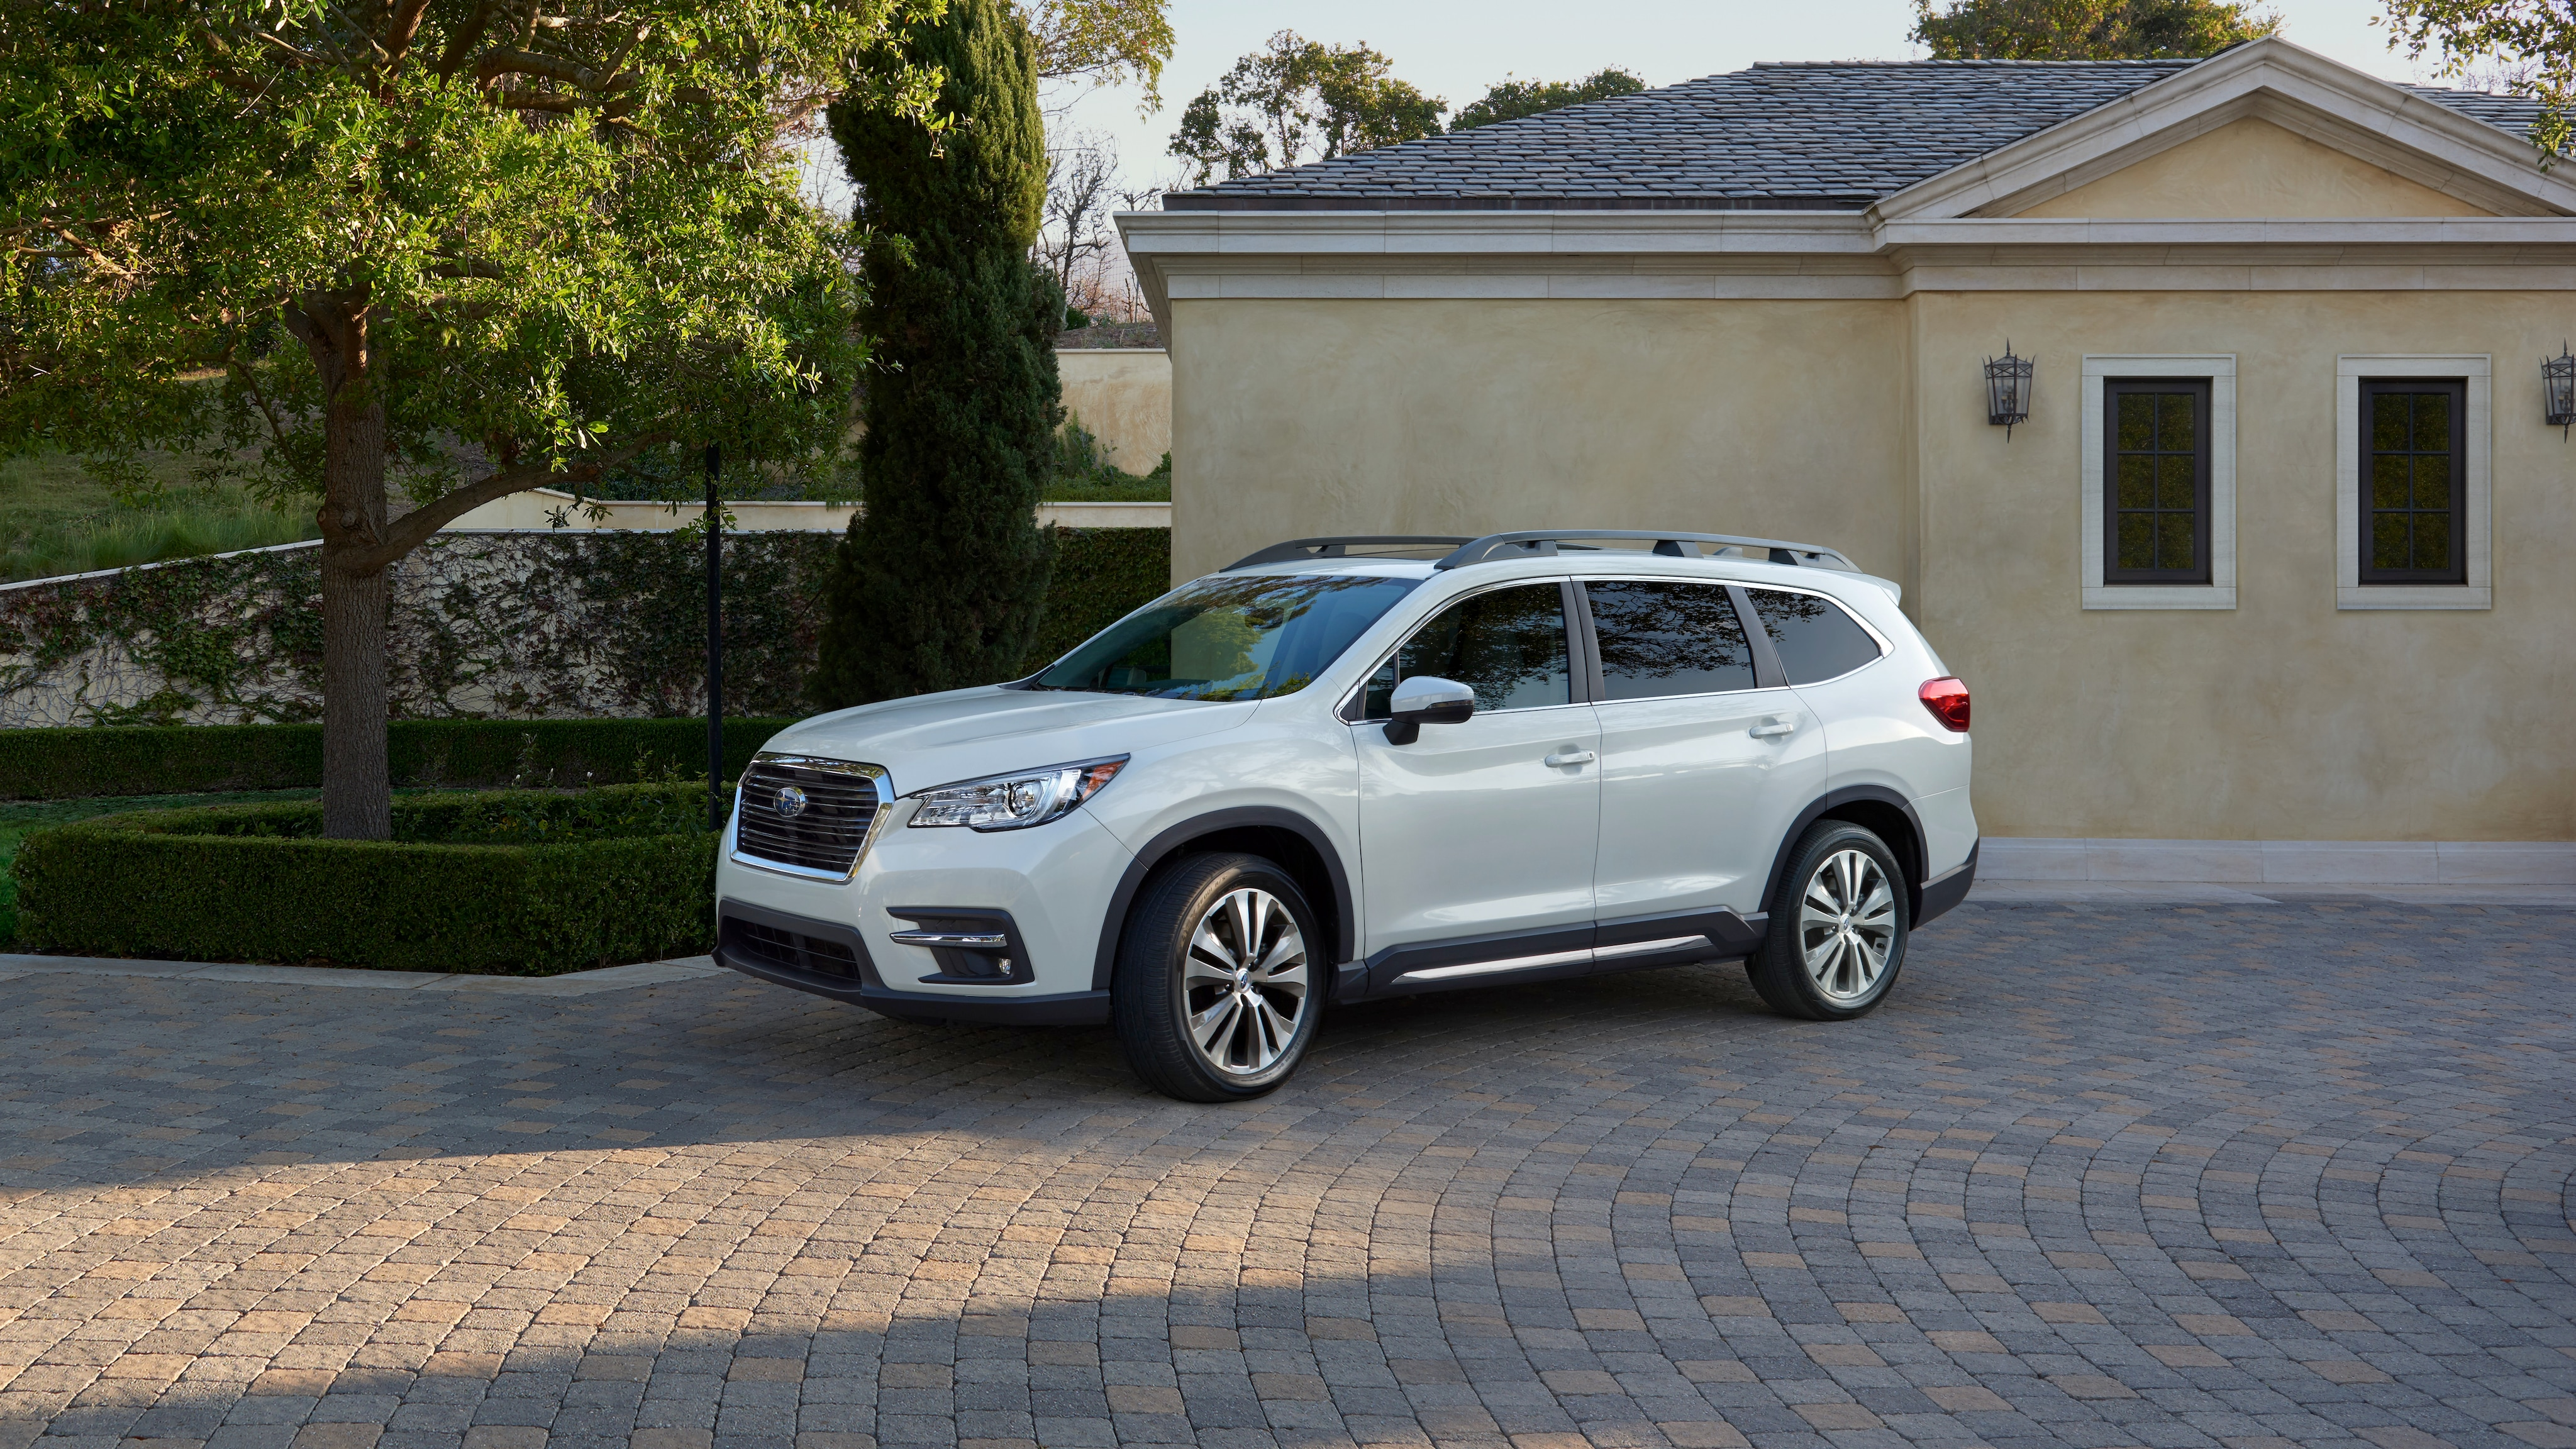 2019 Subaru Ascent For Sale in National City